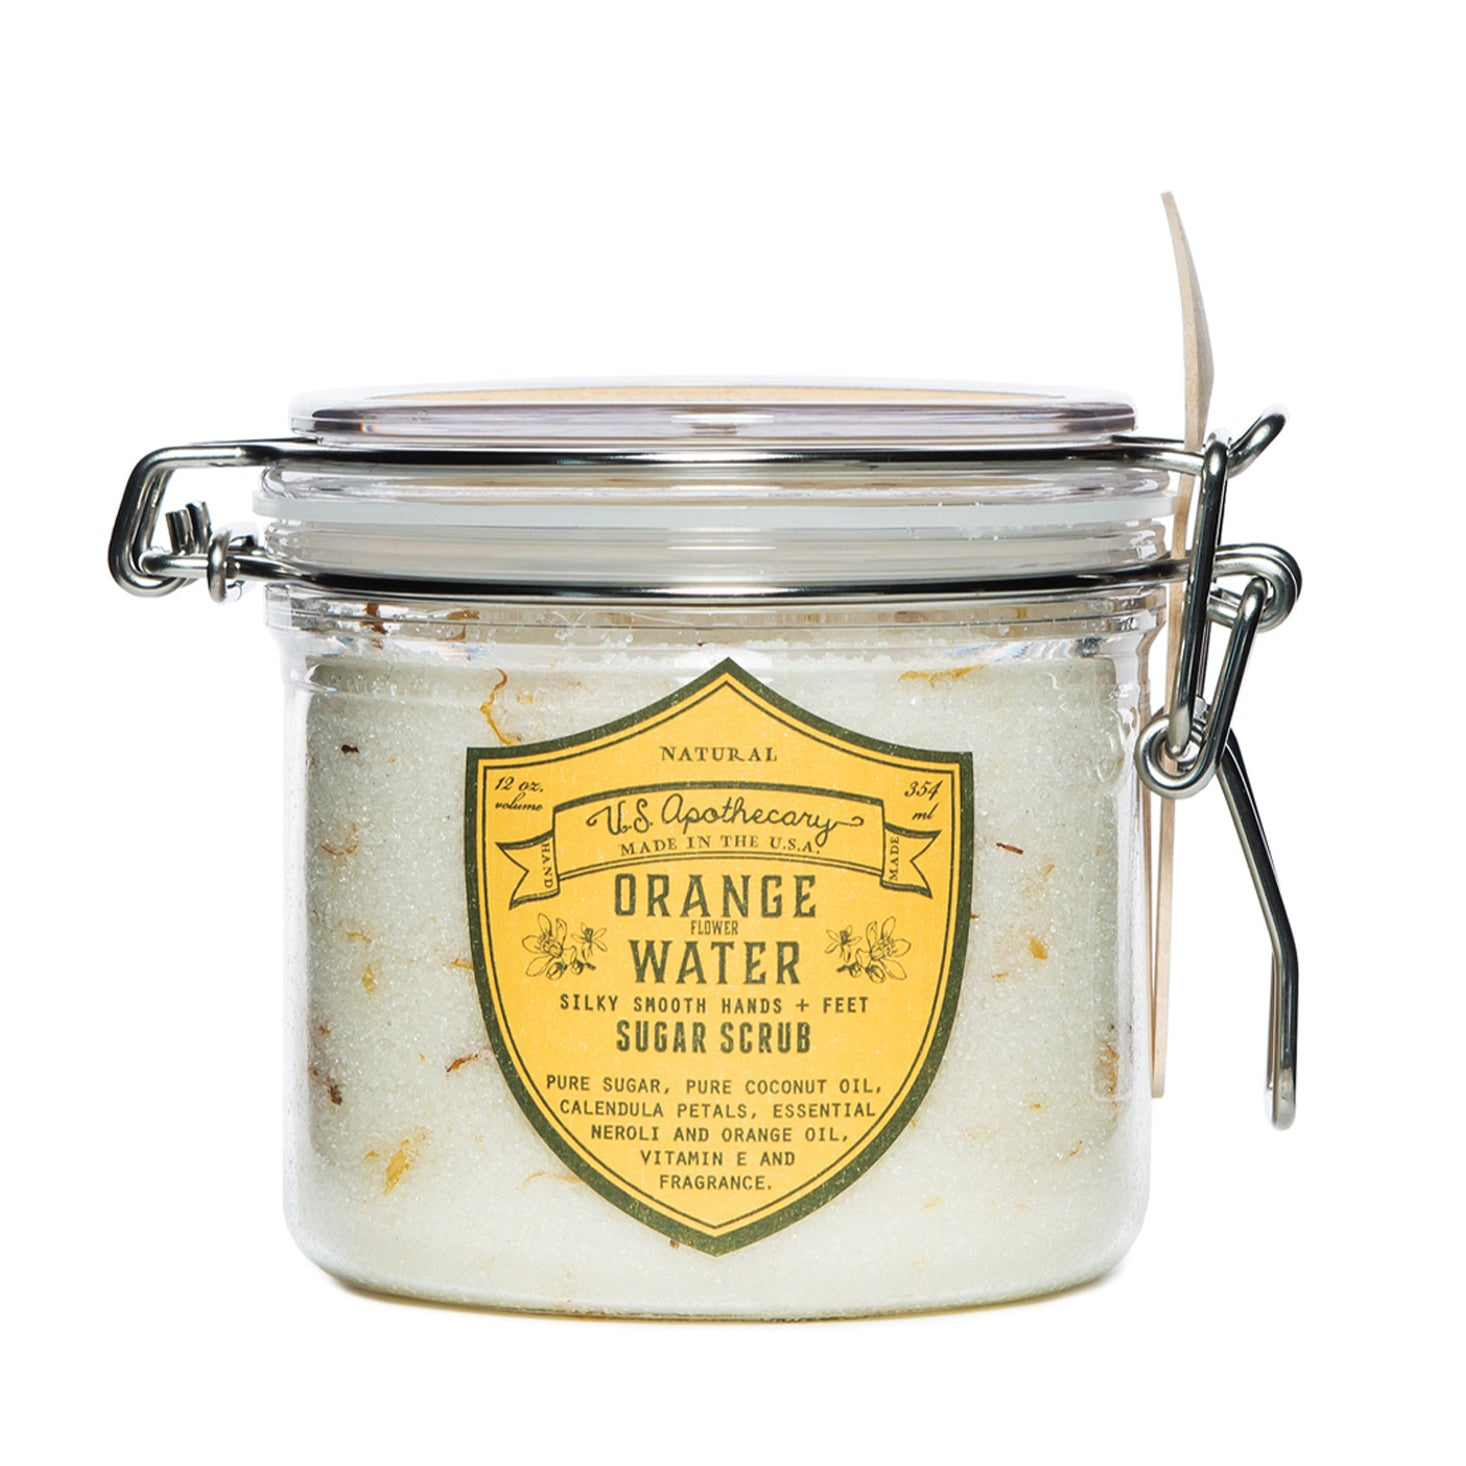 U.S. Apothecary Orange Water Sugar Scrub